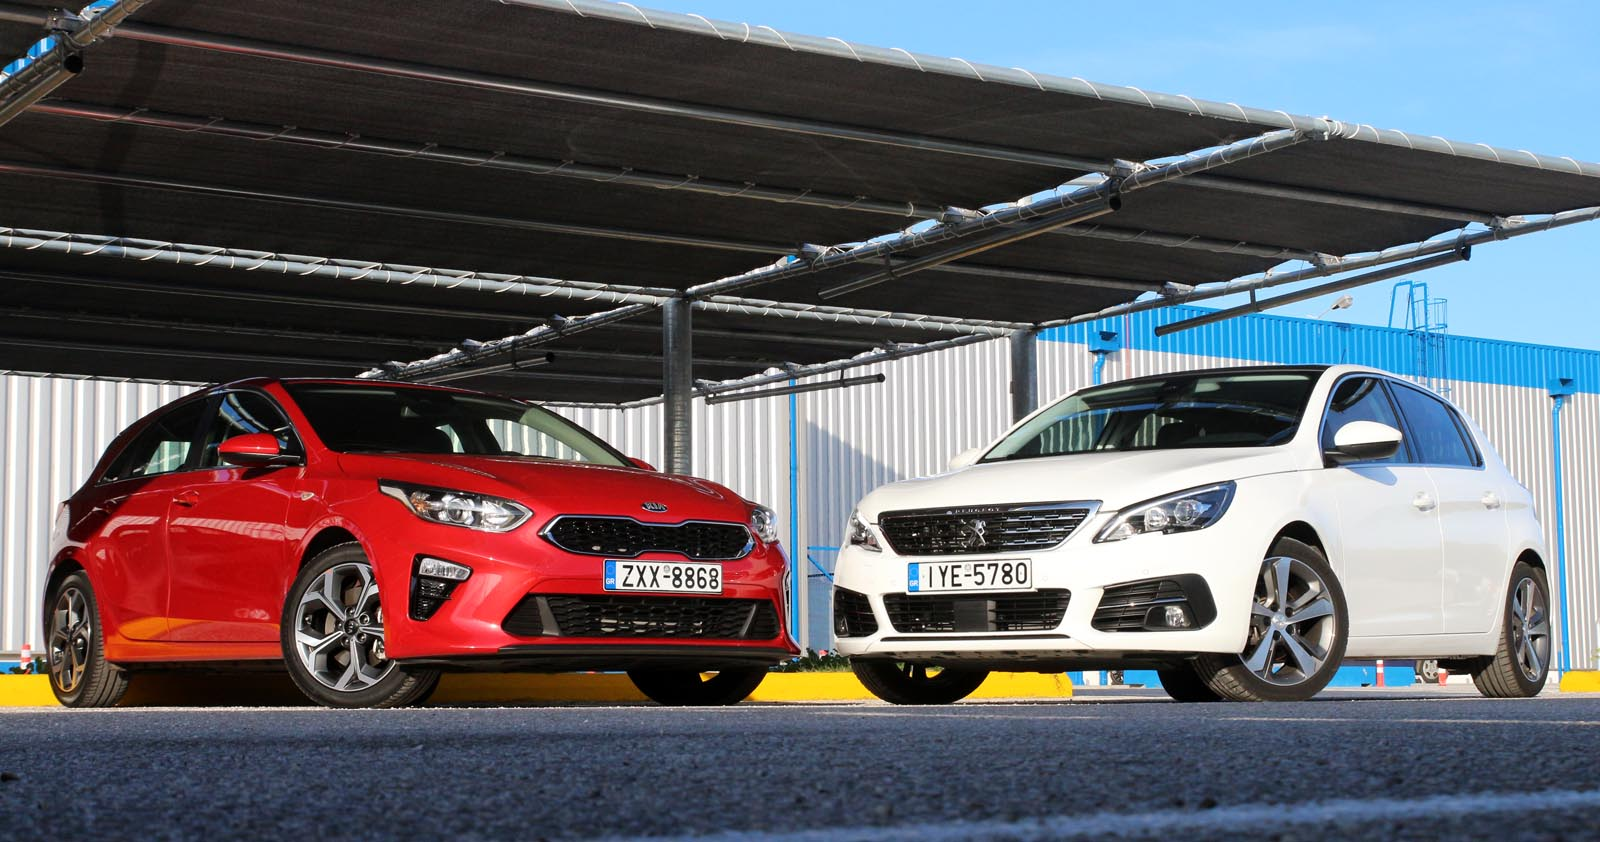 Photo of Kia Ceed 1.6 CRDi vs Peugeot 308 1.5 BlueHDI [test drive]